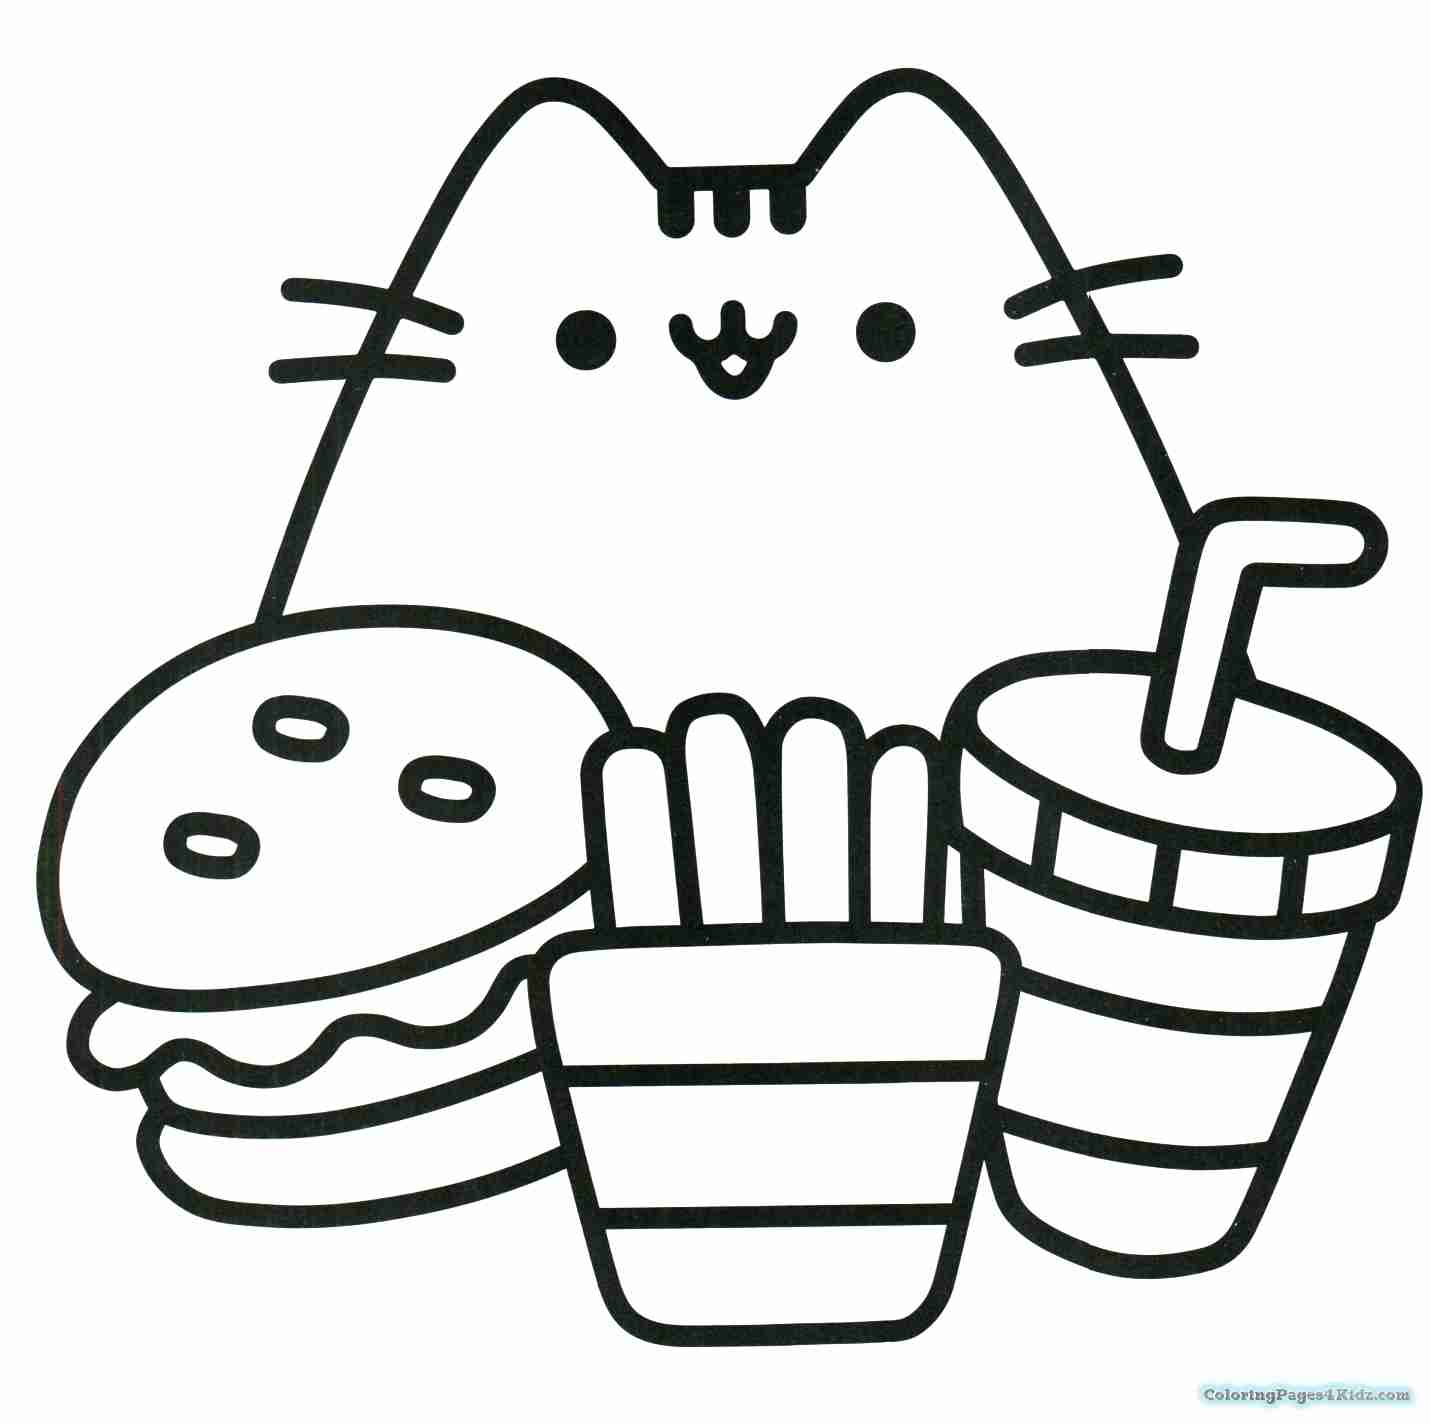 1430x1424 Pusheen Holding A Pizza Coloring Pages For Kids In Olegratiy